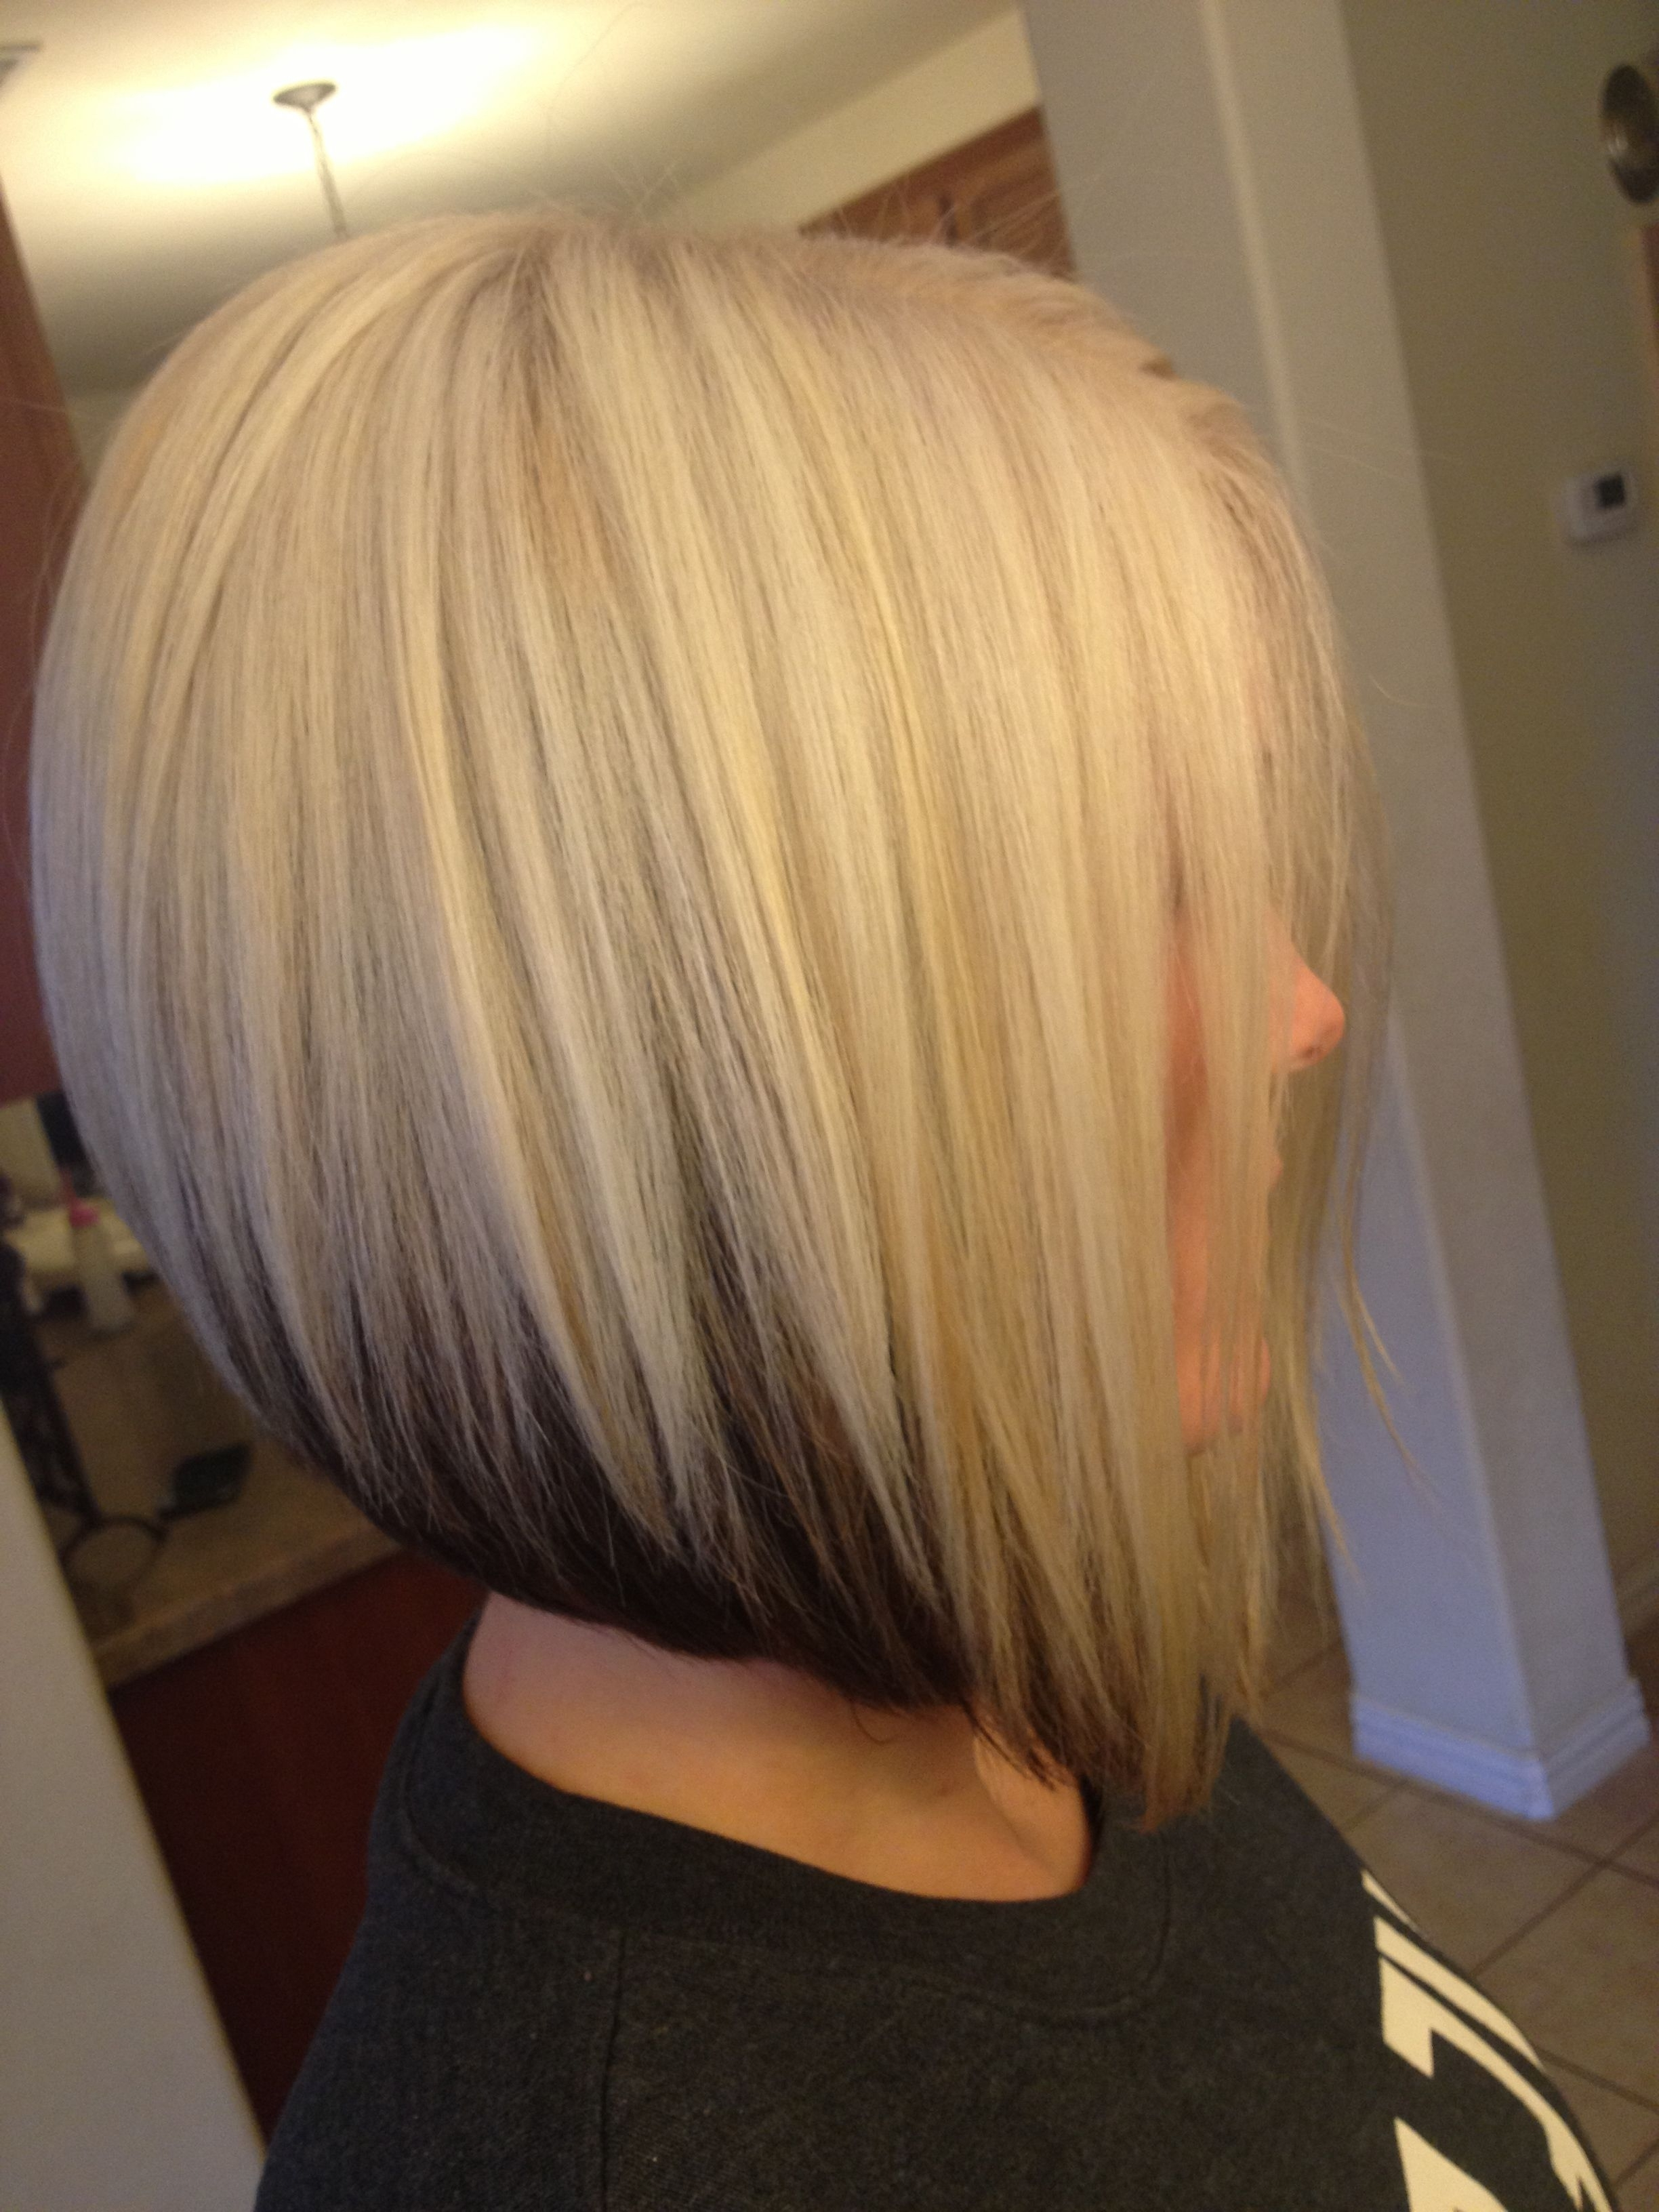 30 Short Bob Hairstyles For Women (View 11 of 20)